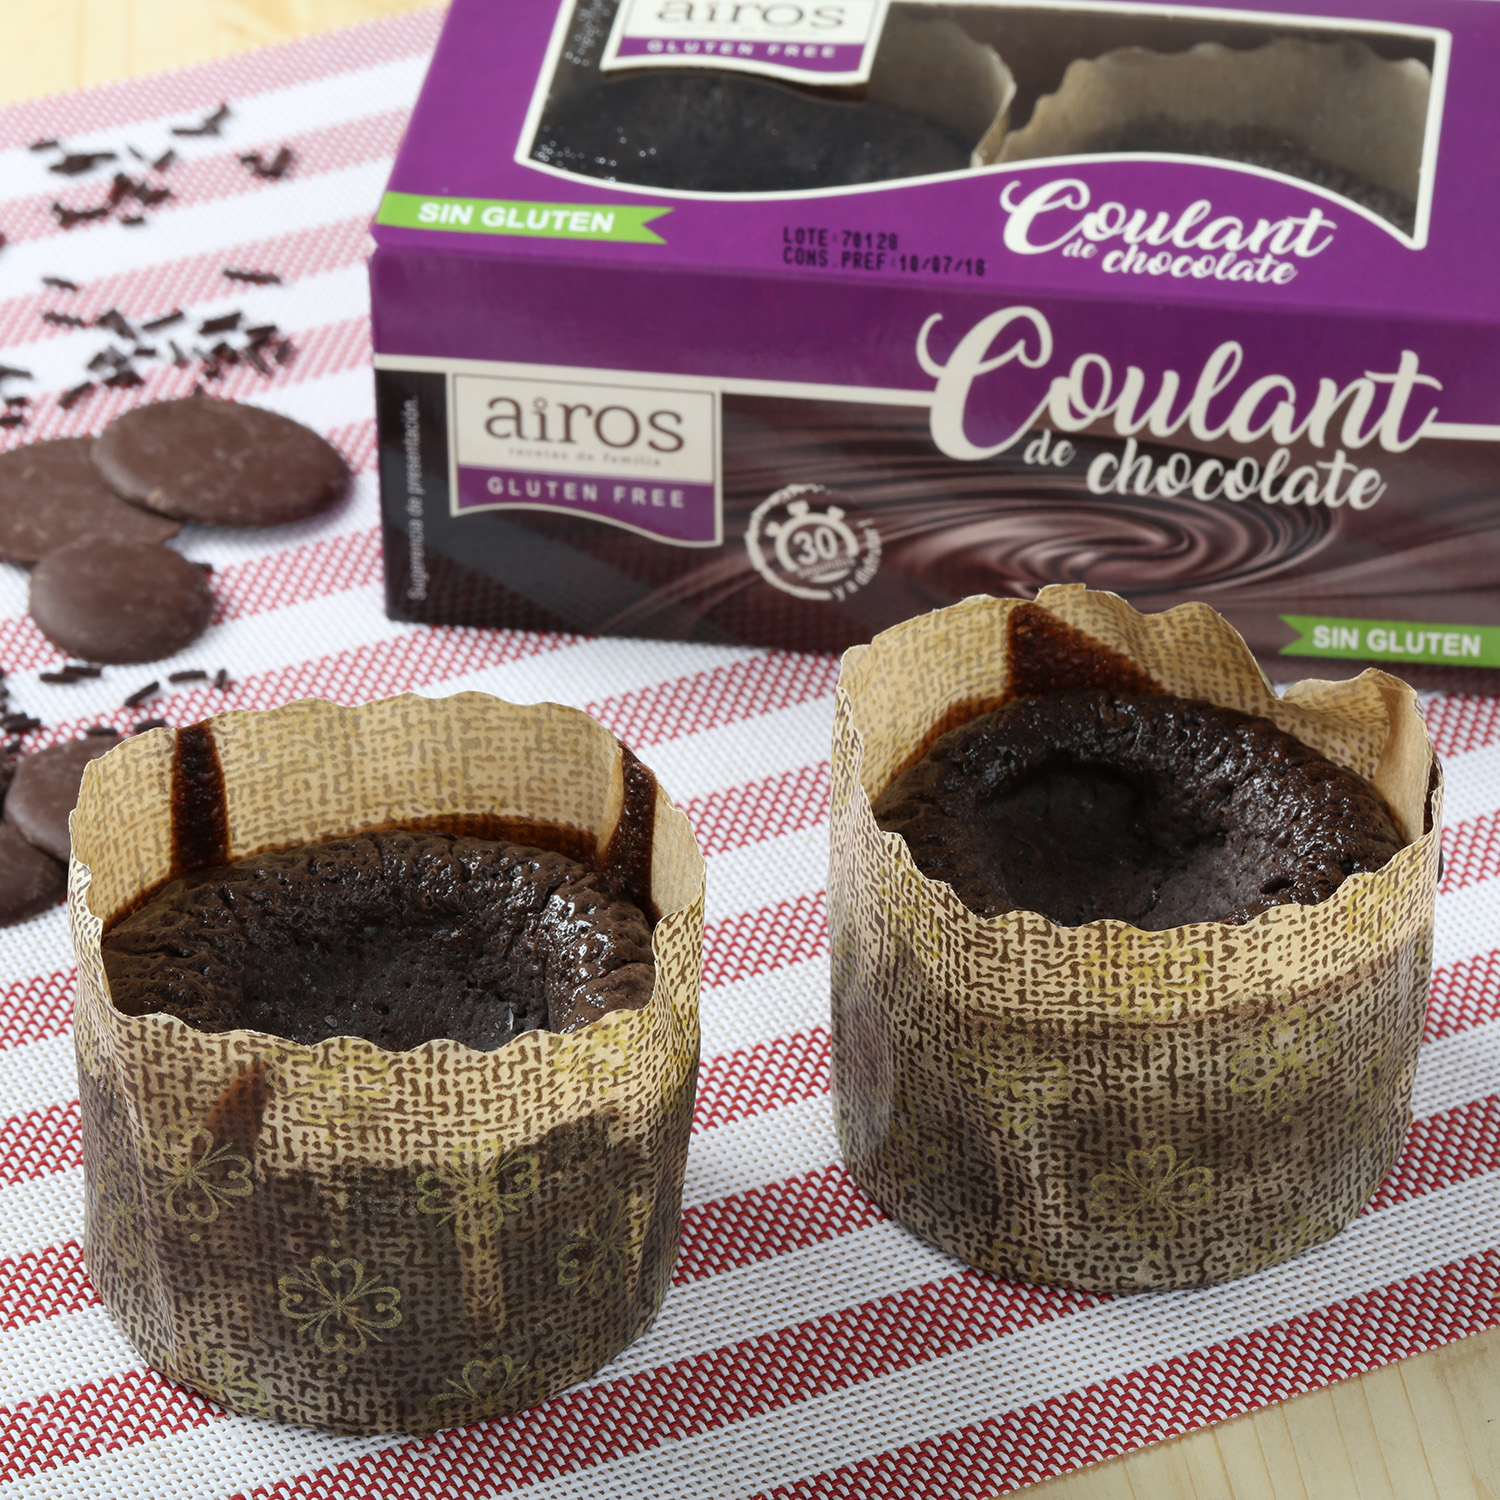 Coulant chocolate - Carrefour supermercado compra online